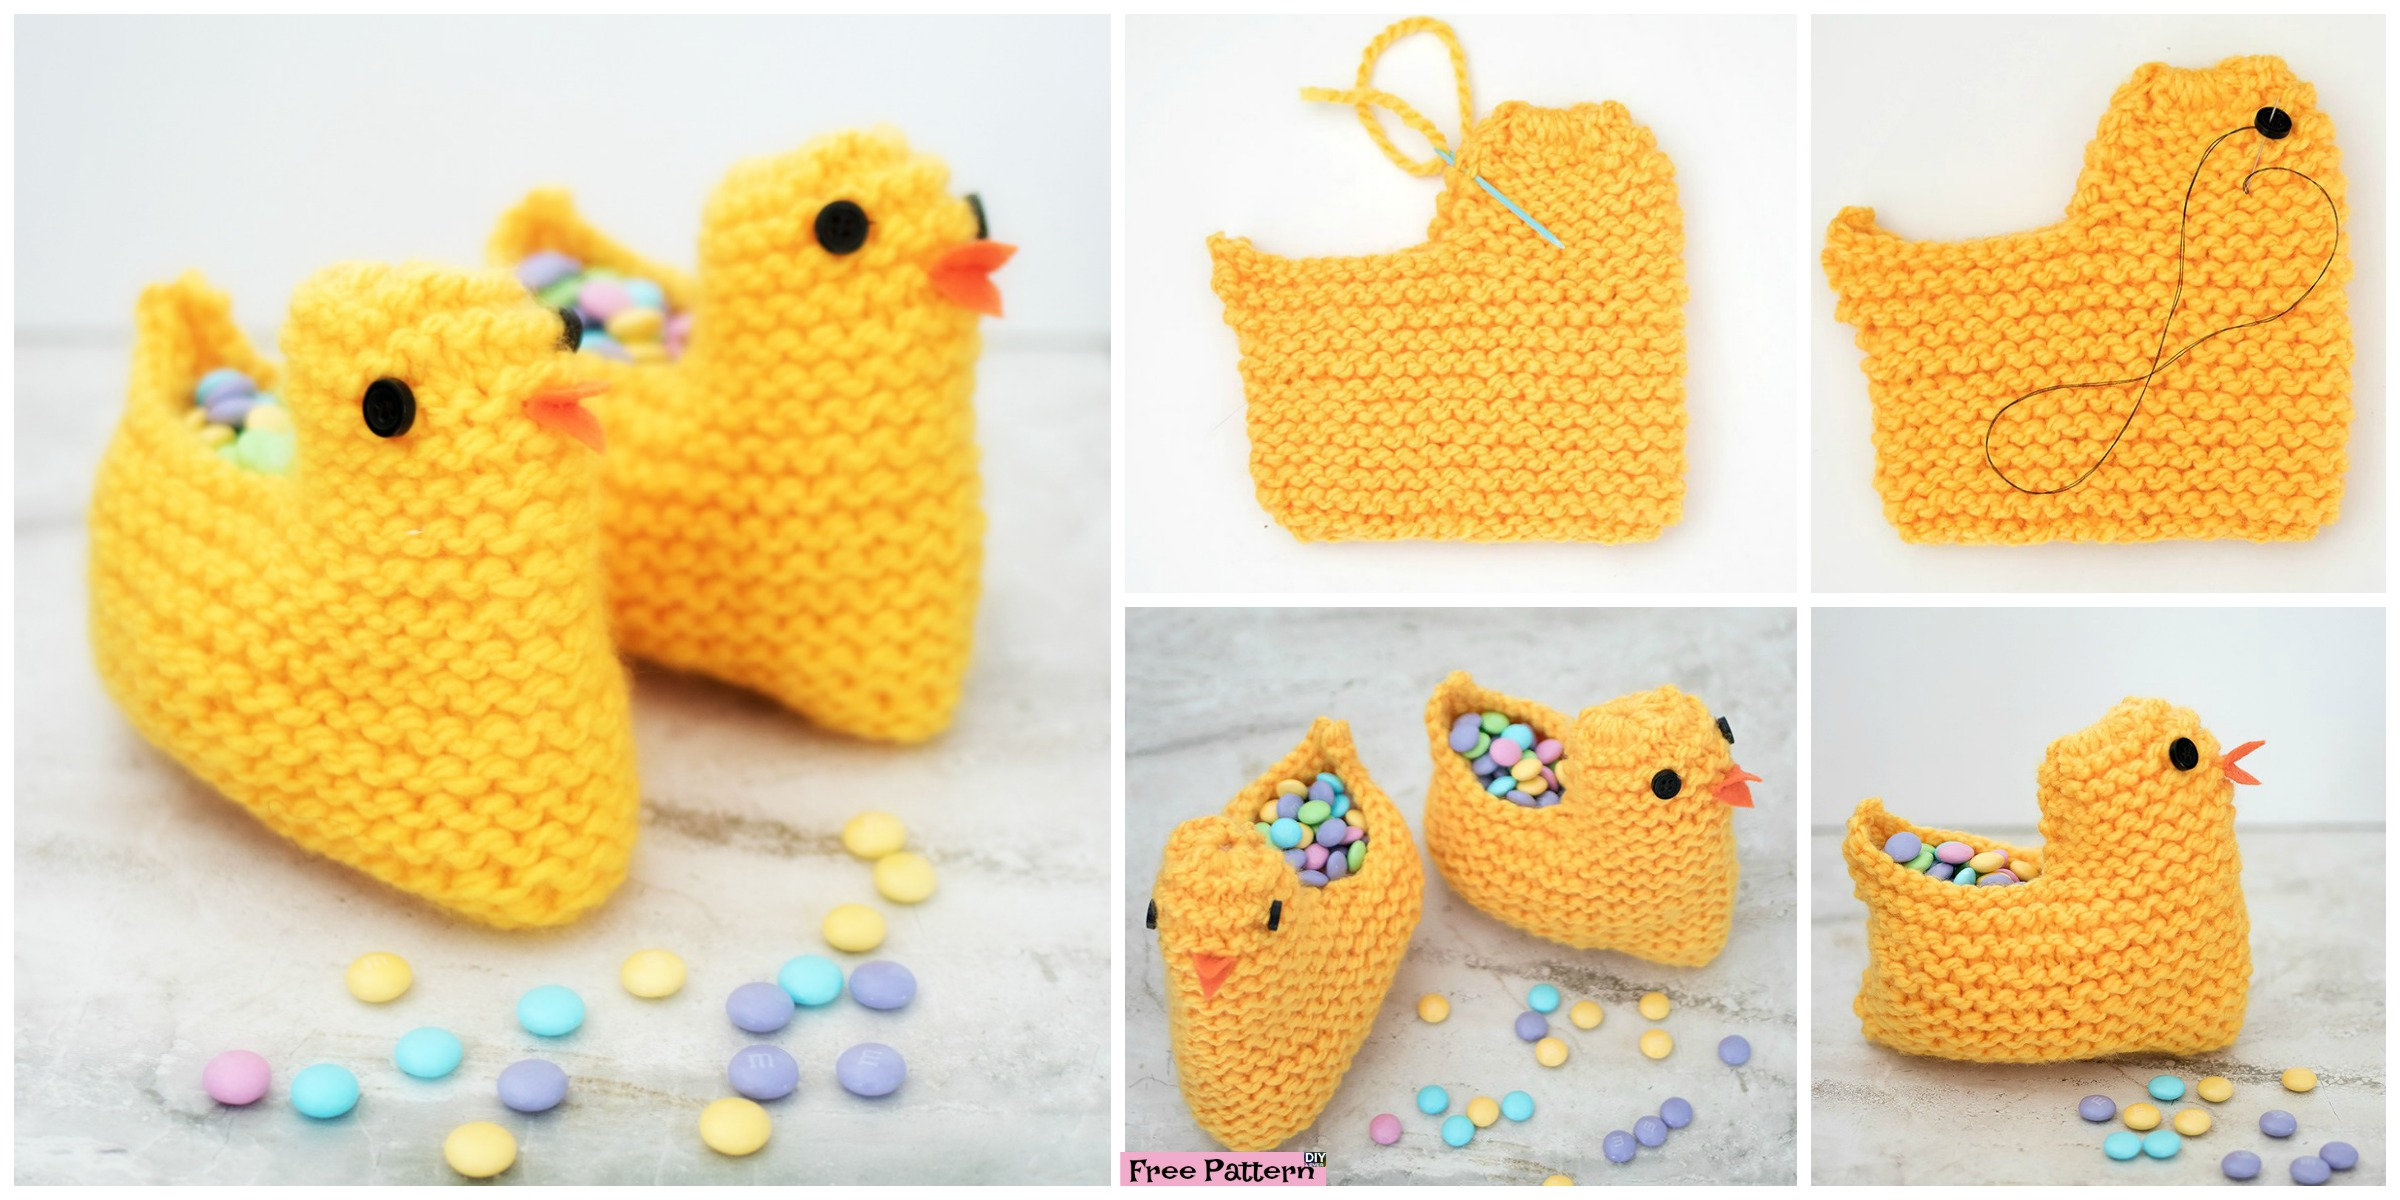 Cute Knit Chick Basket – Free Pattern